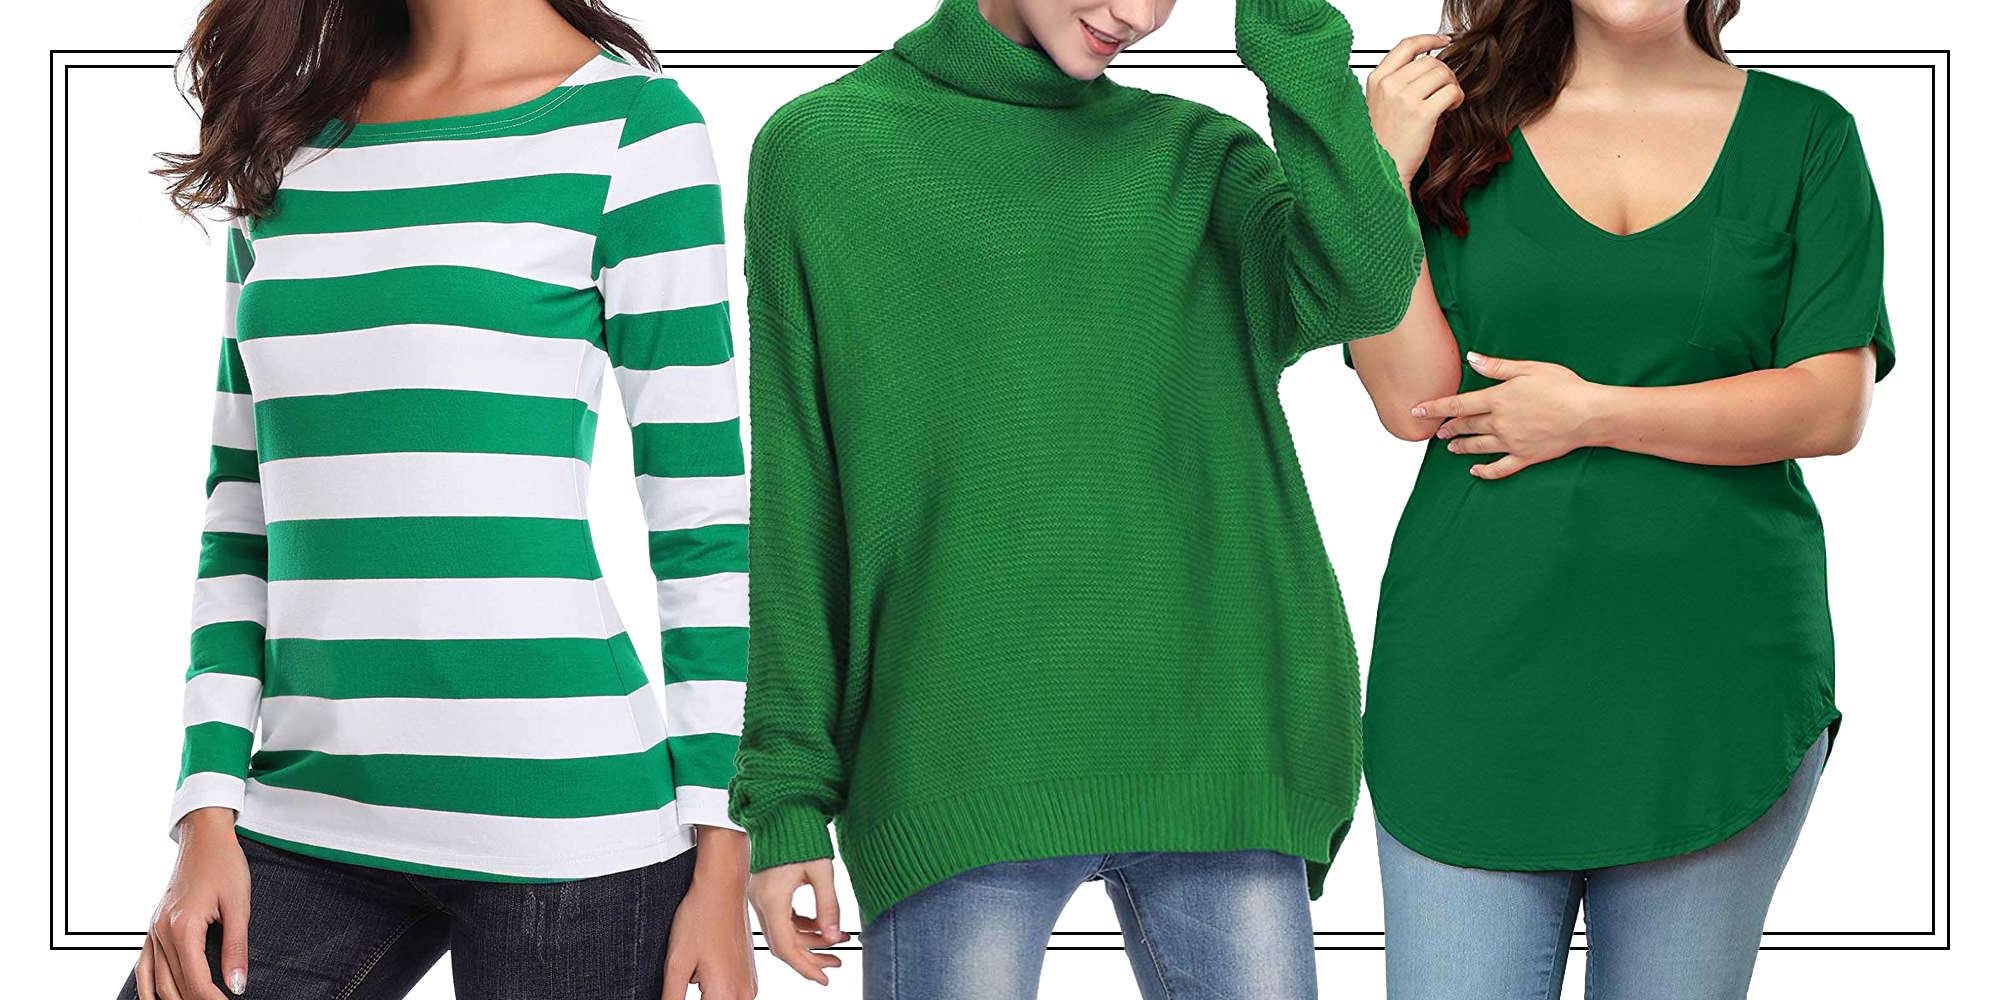 17 St. Patrick's Day Outfits for Women Green Clothing